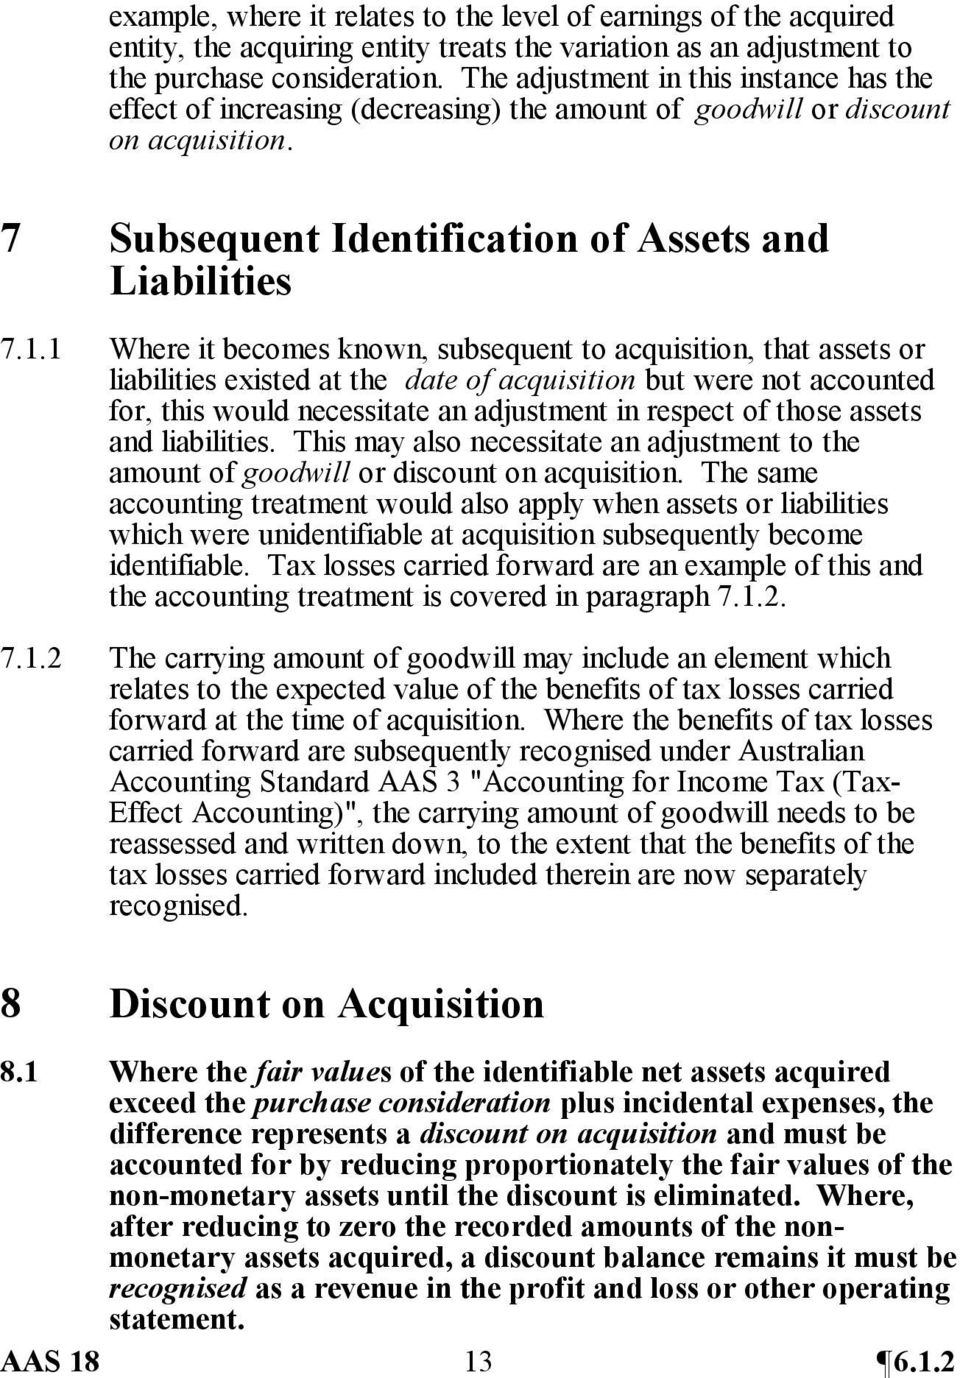 1 Where it becomes known, subsequent to acquisition, that assets or liabilities existed at the date of acquisition but were not accounted for, this would necessitate an adjustment in respect of those